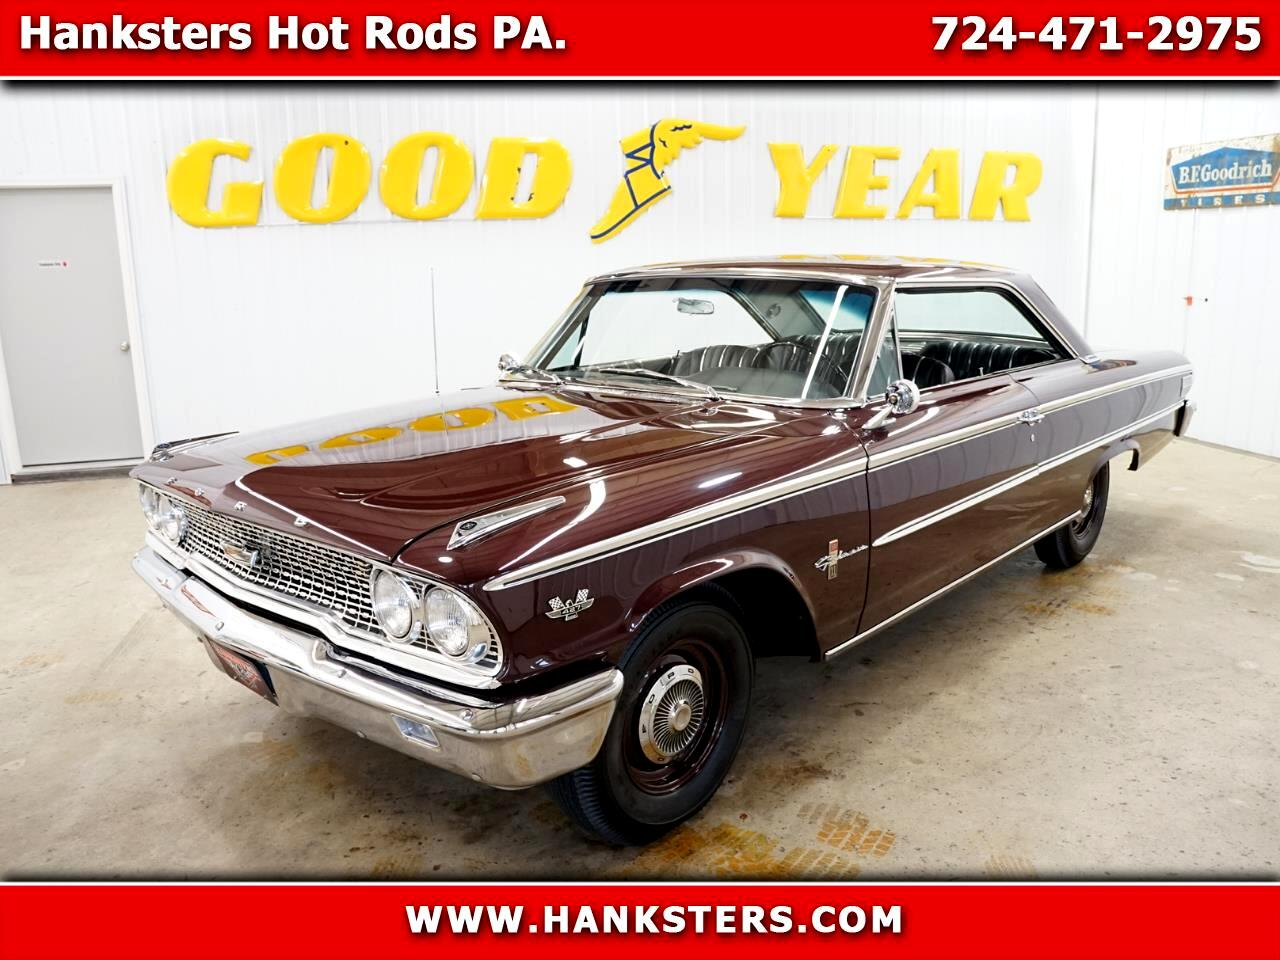 1963 Ford Galaxie 500/XL R-Code